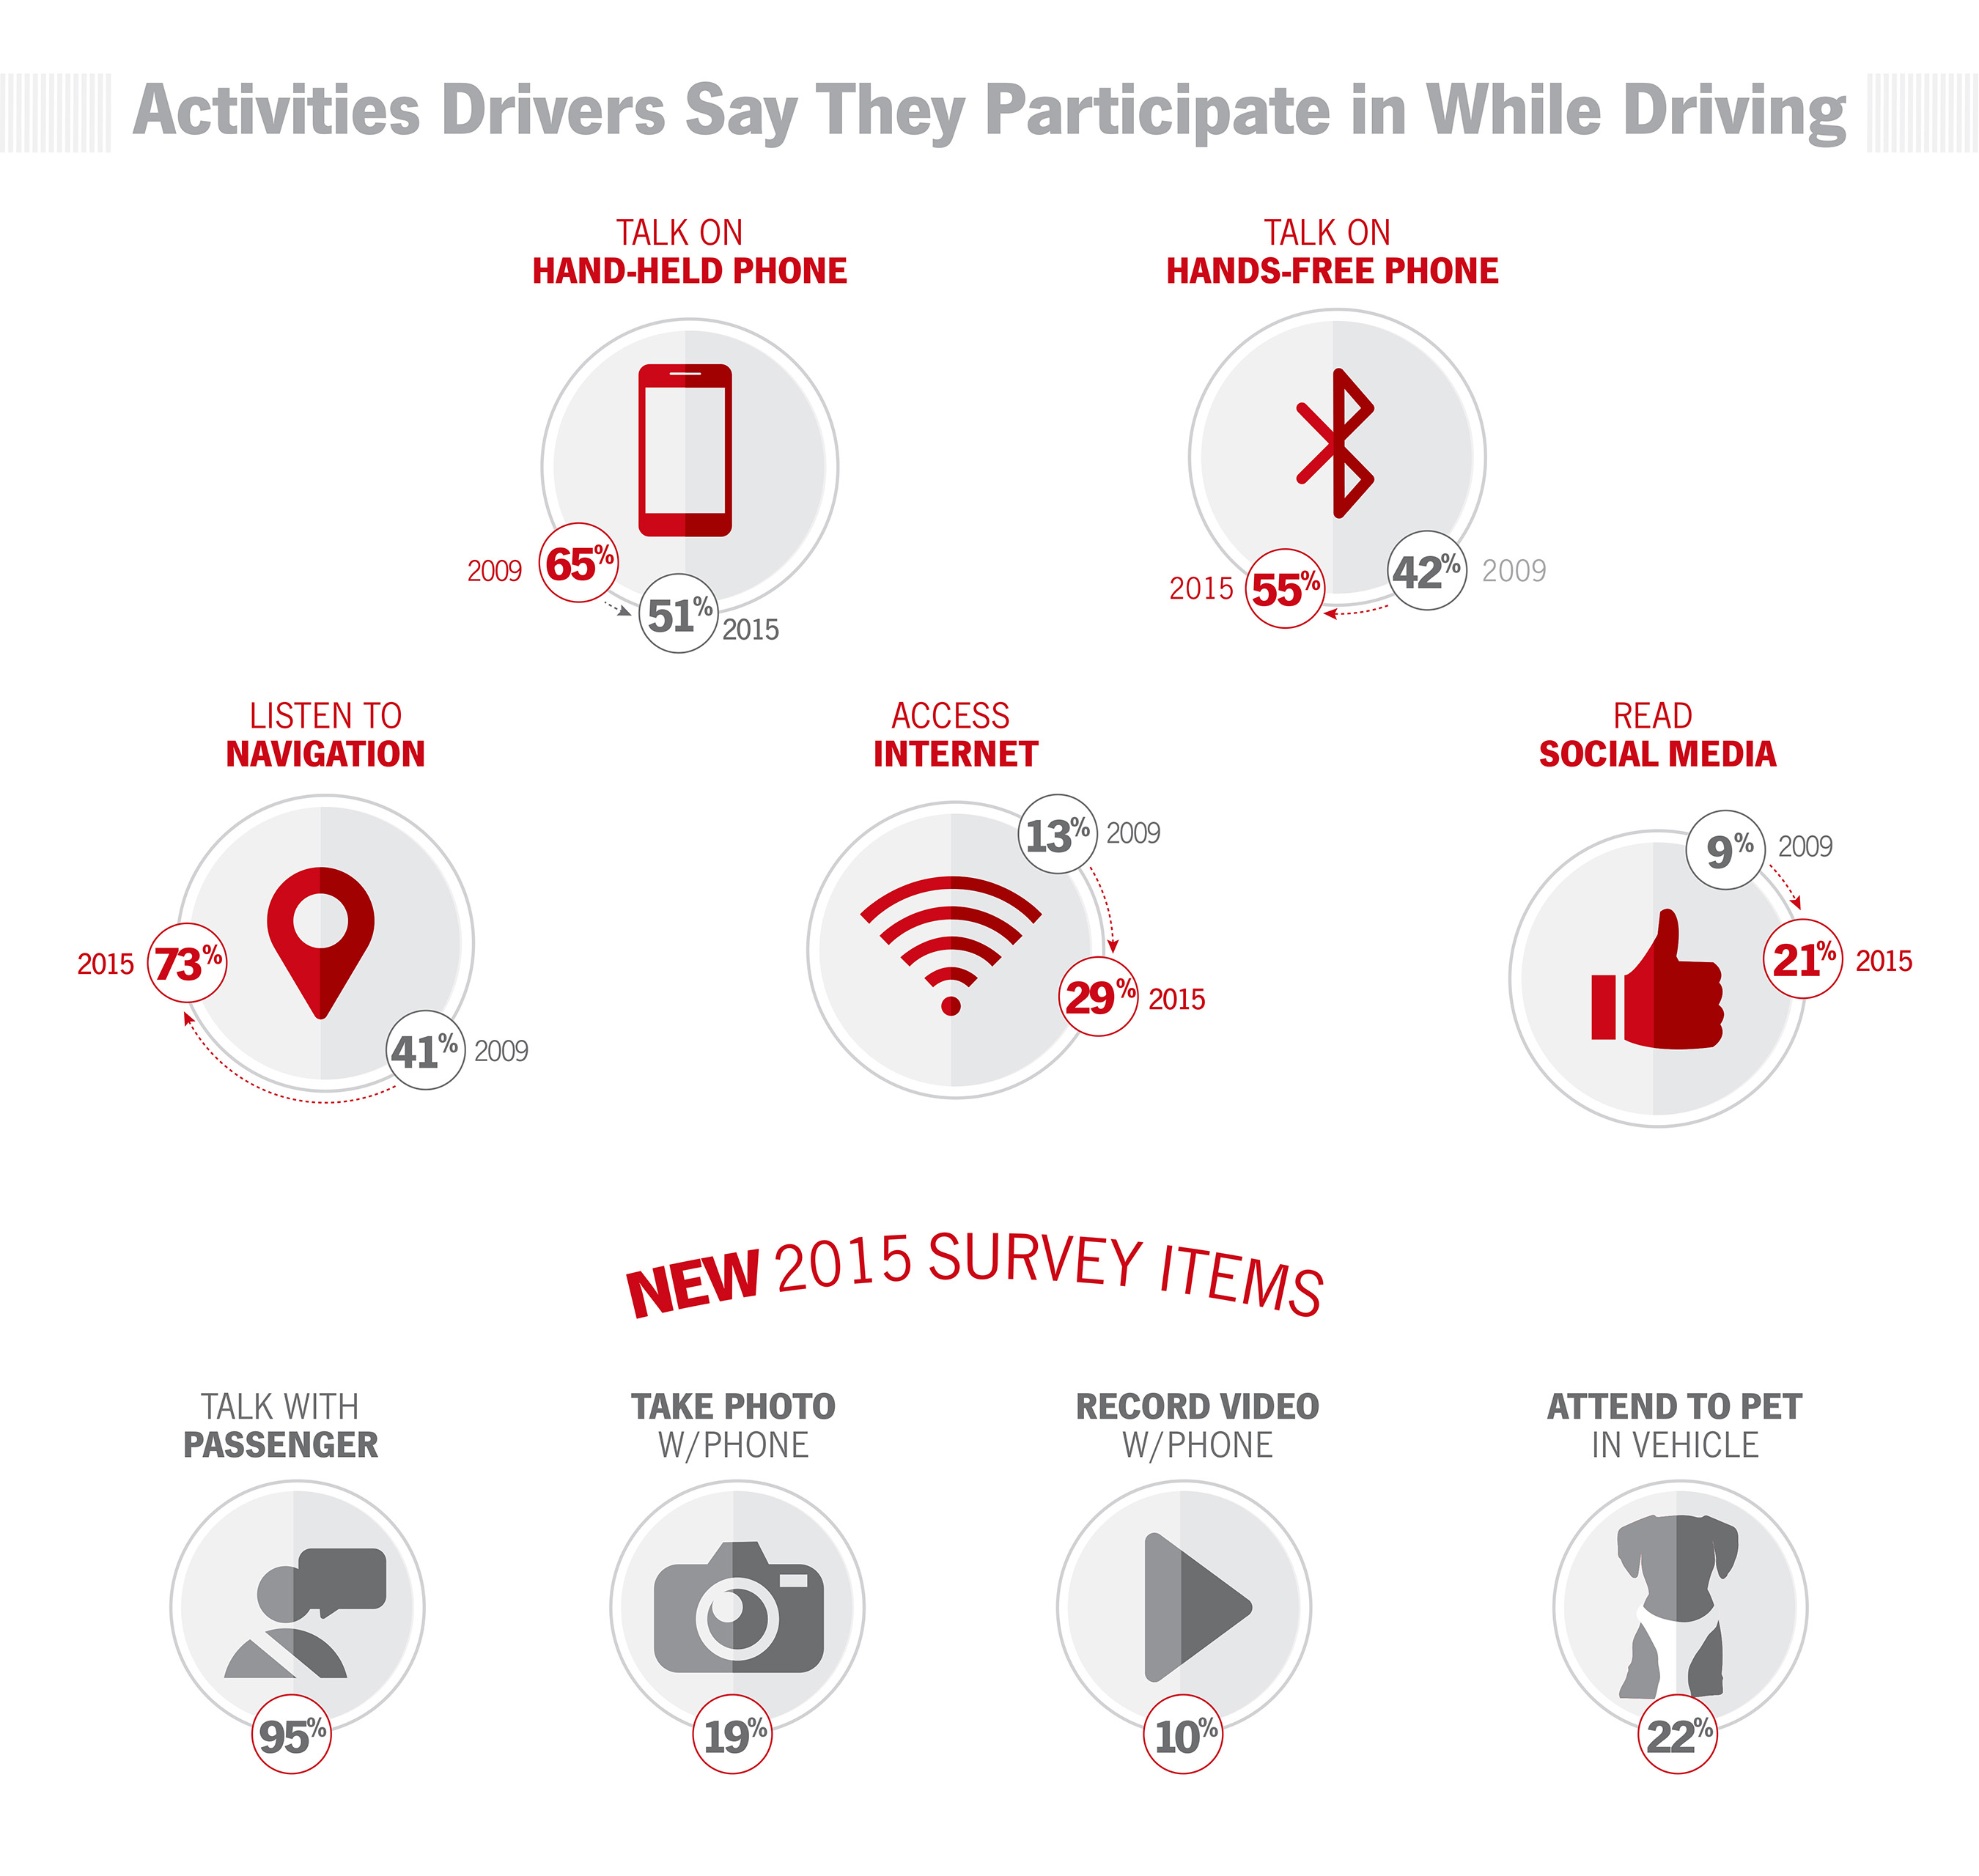 Activities Drivers Say They Participate in While Driving